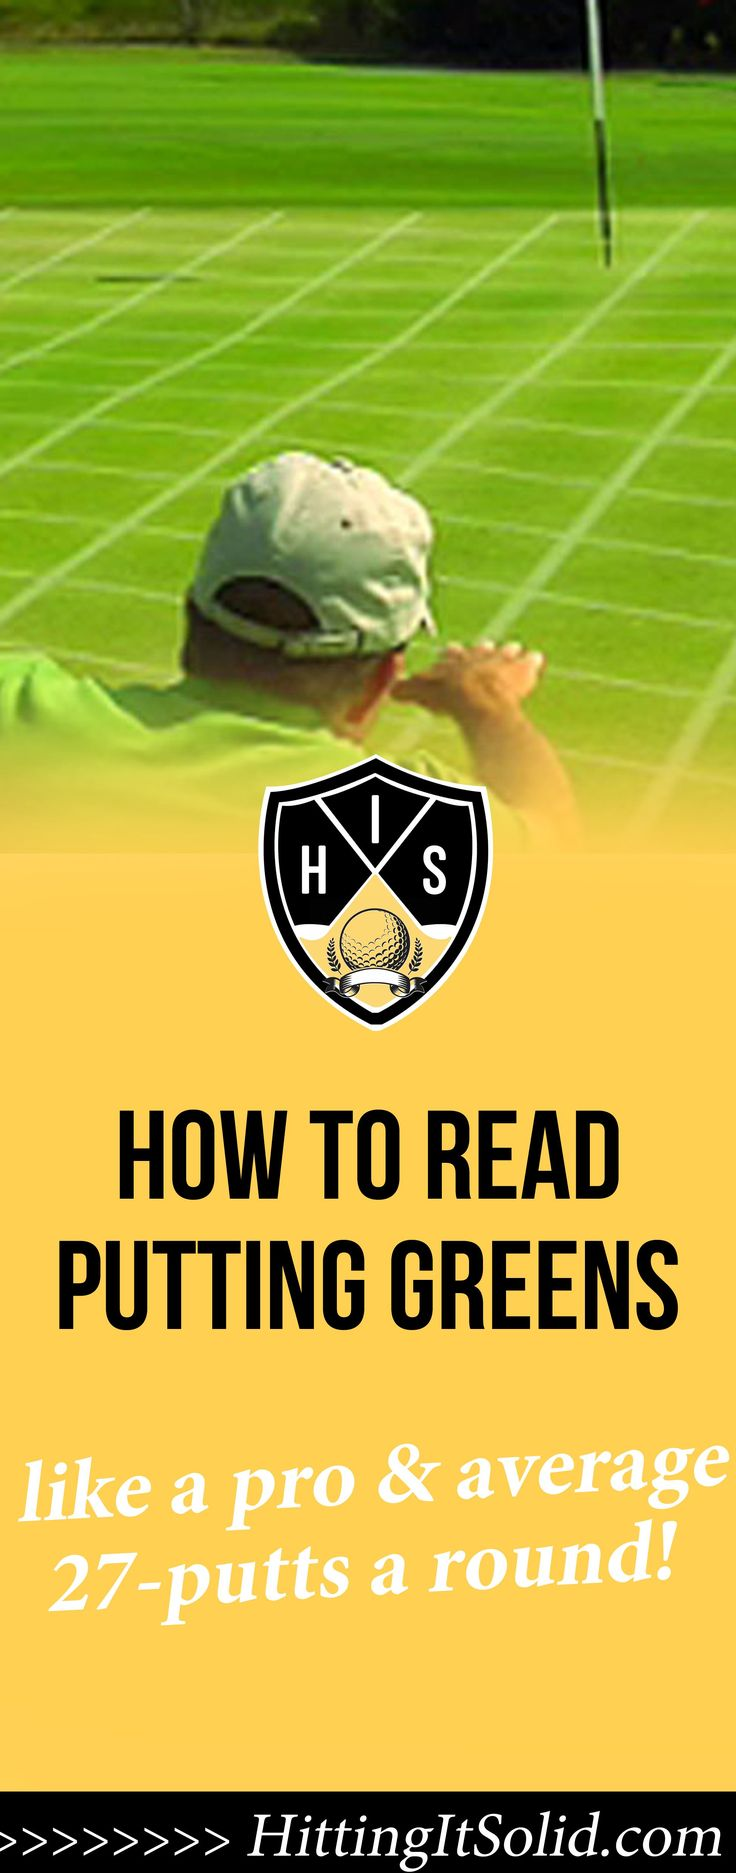 Discover how to read putting greens like a pro and average 27-putts a round and lower your scores.